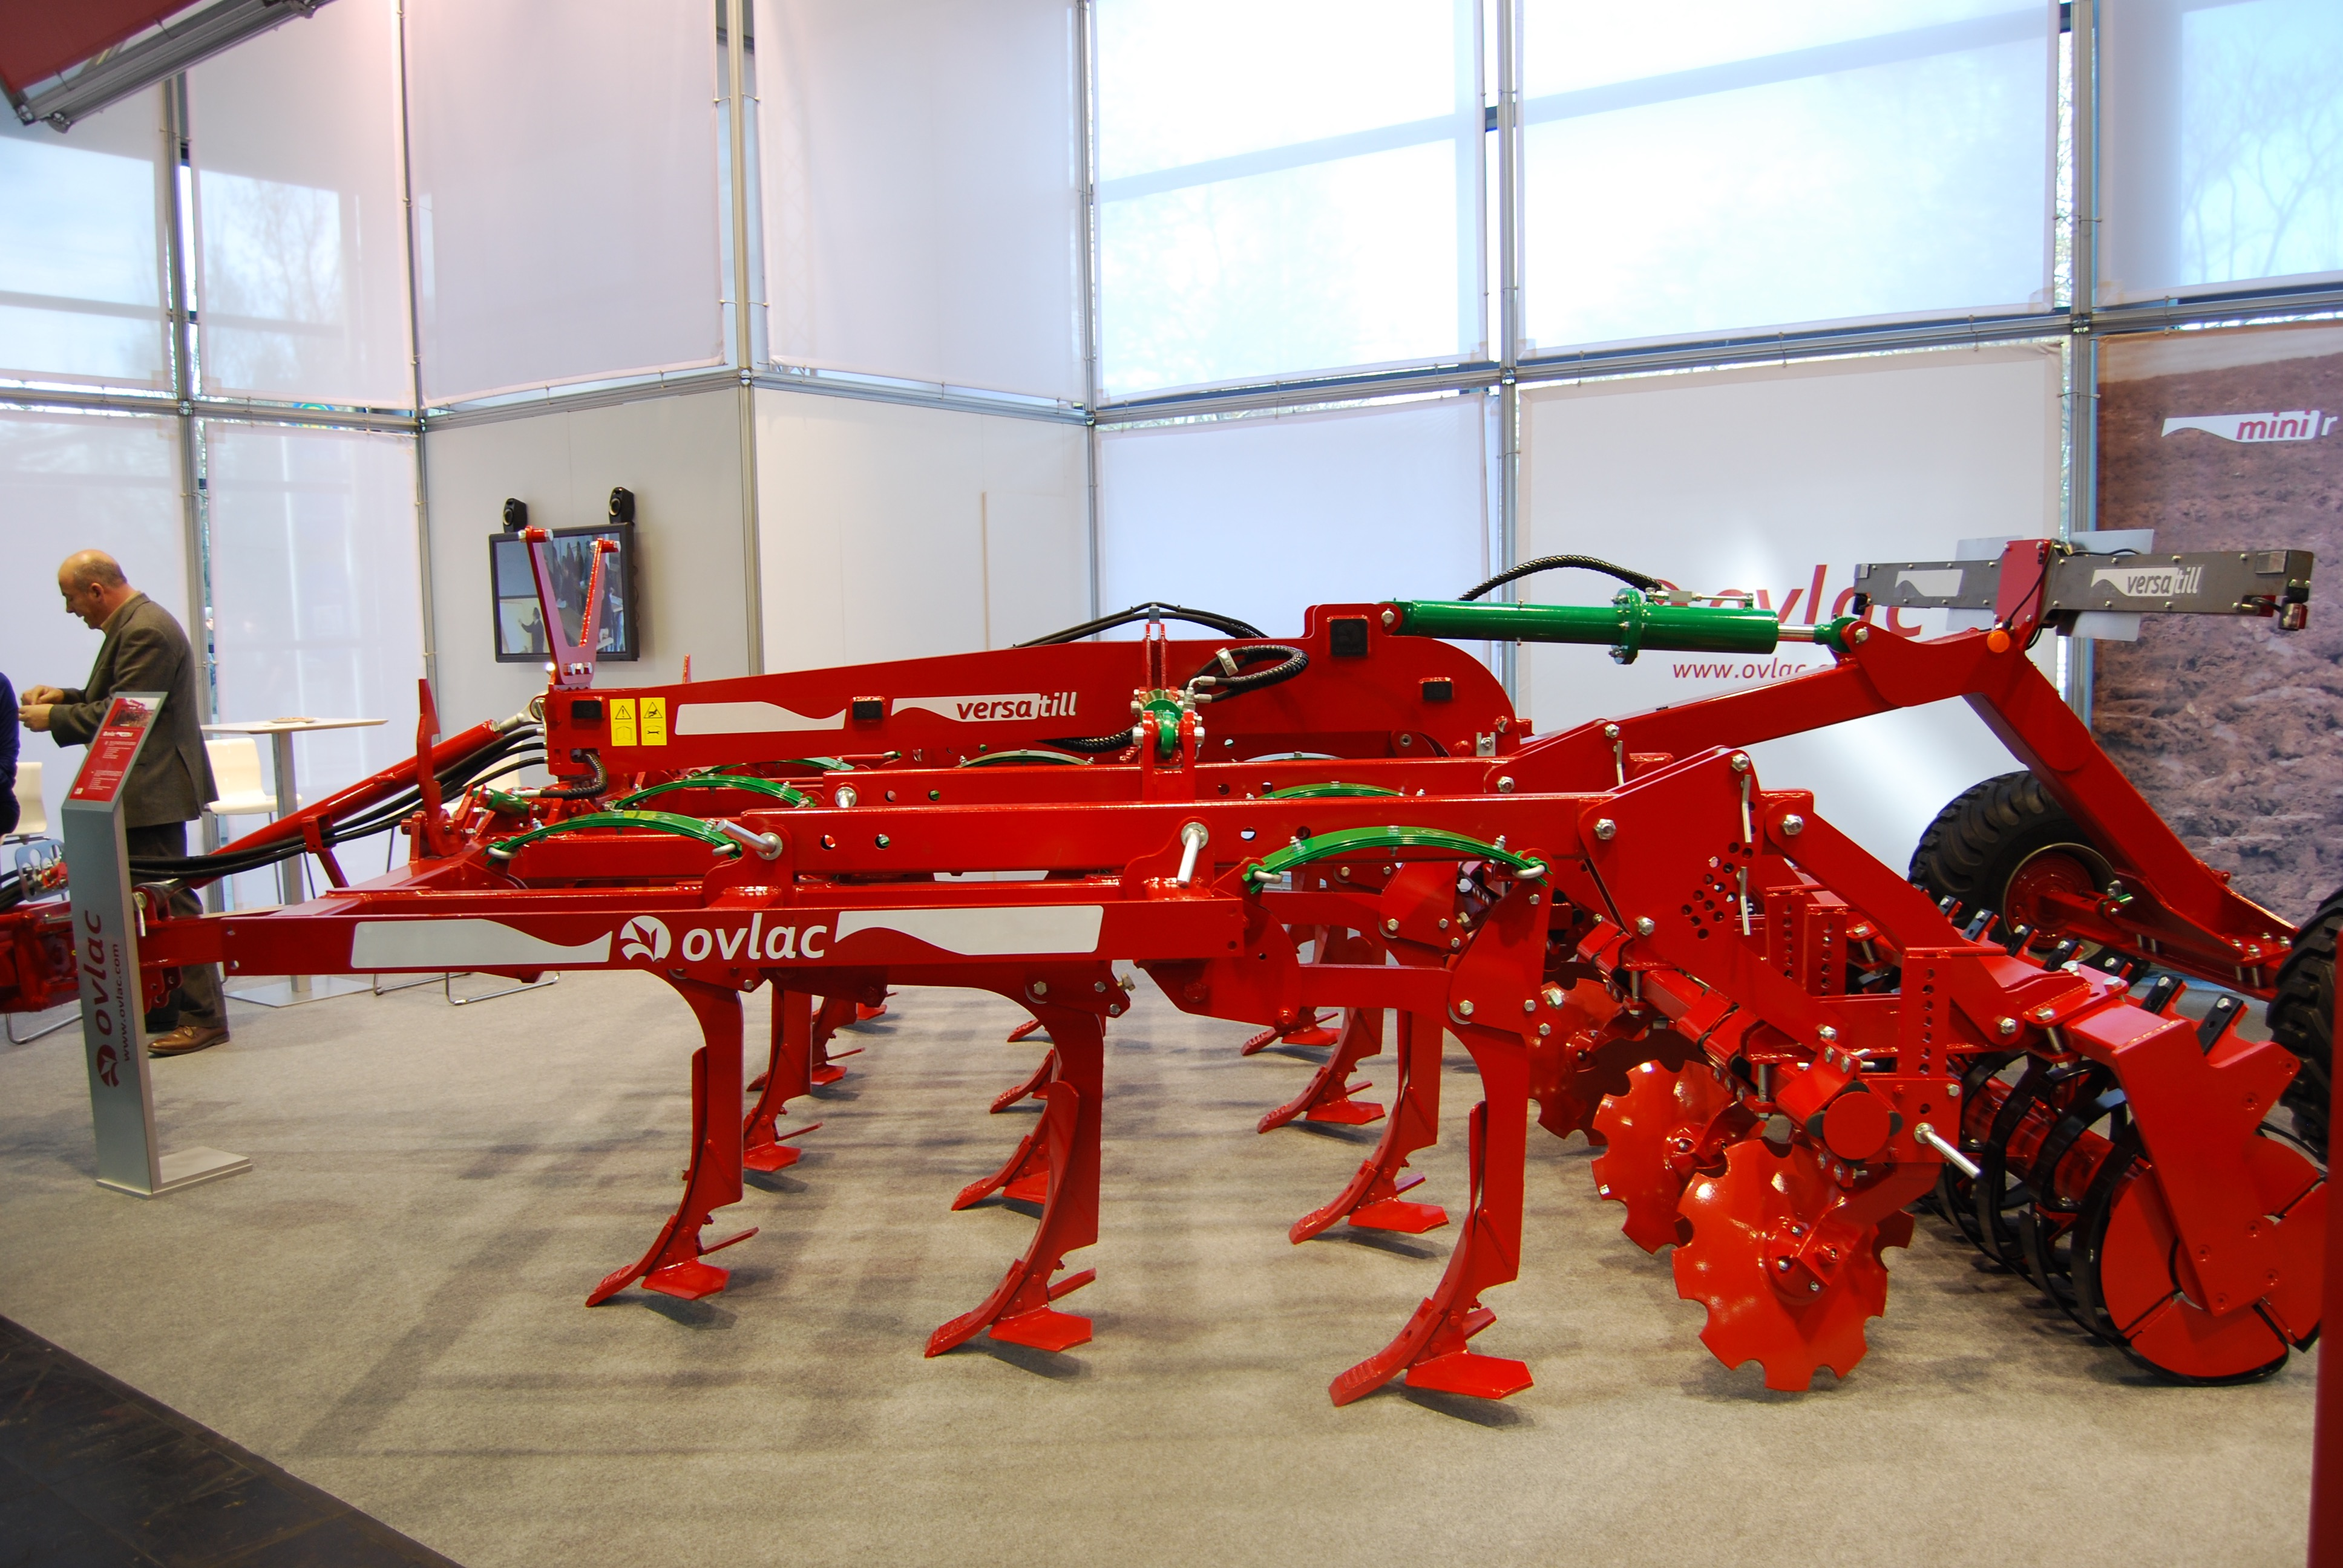 OVLAC will present new hydraulic protection system in Versatill cultivator.